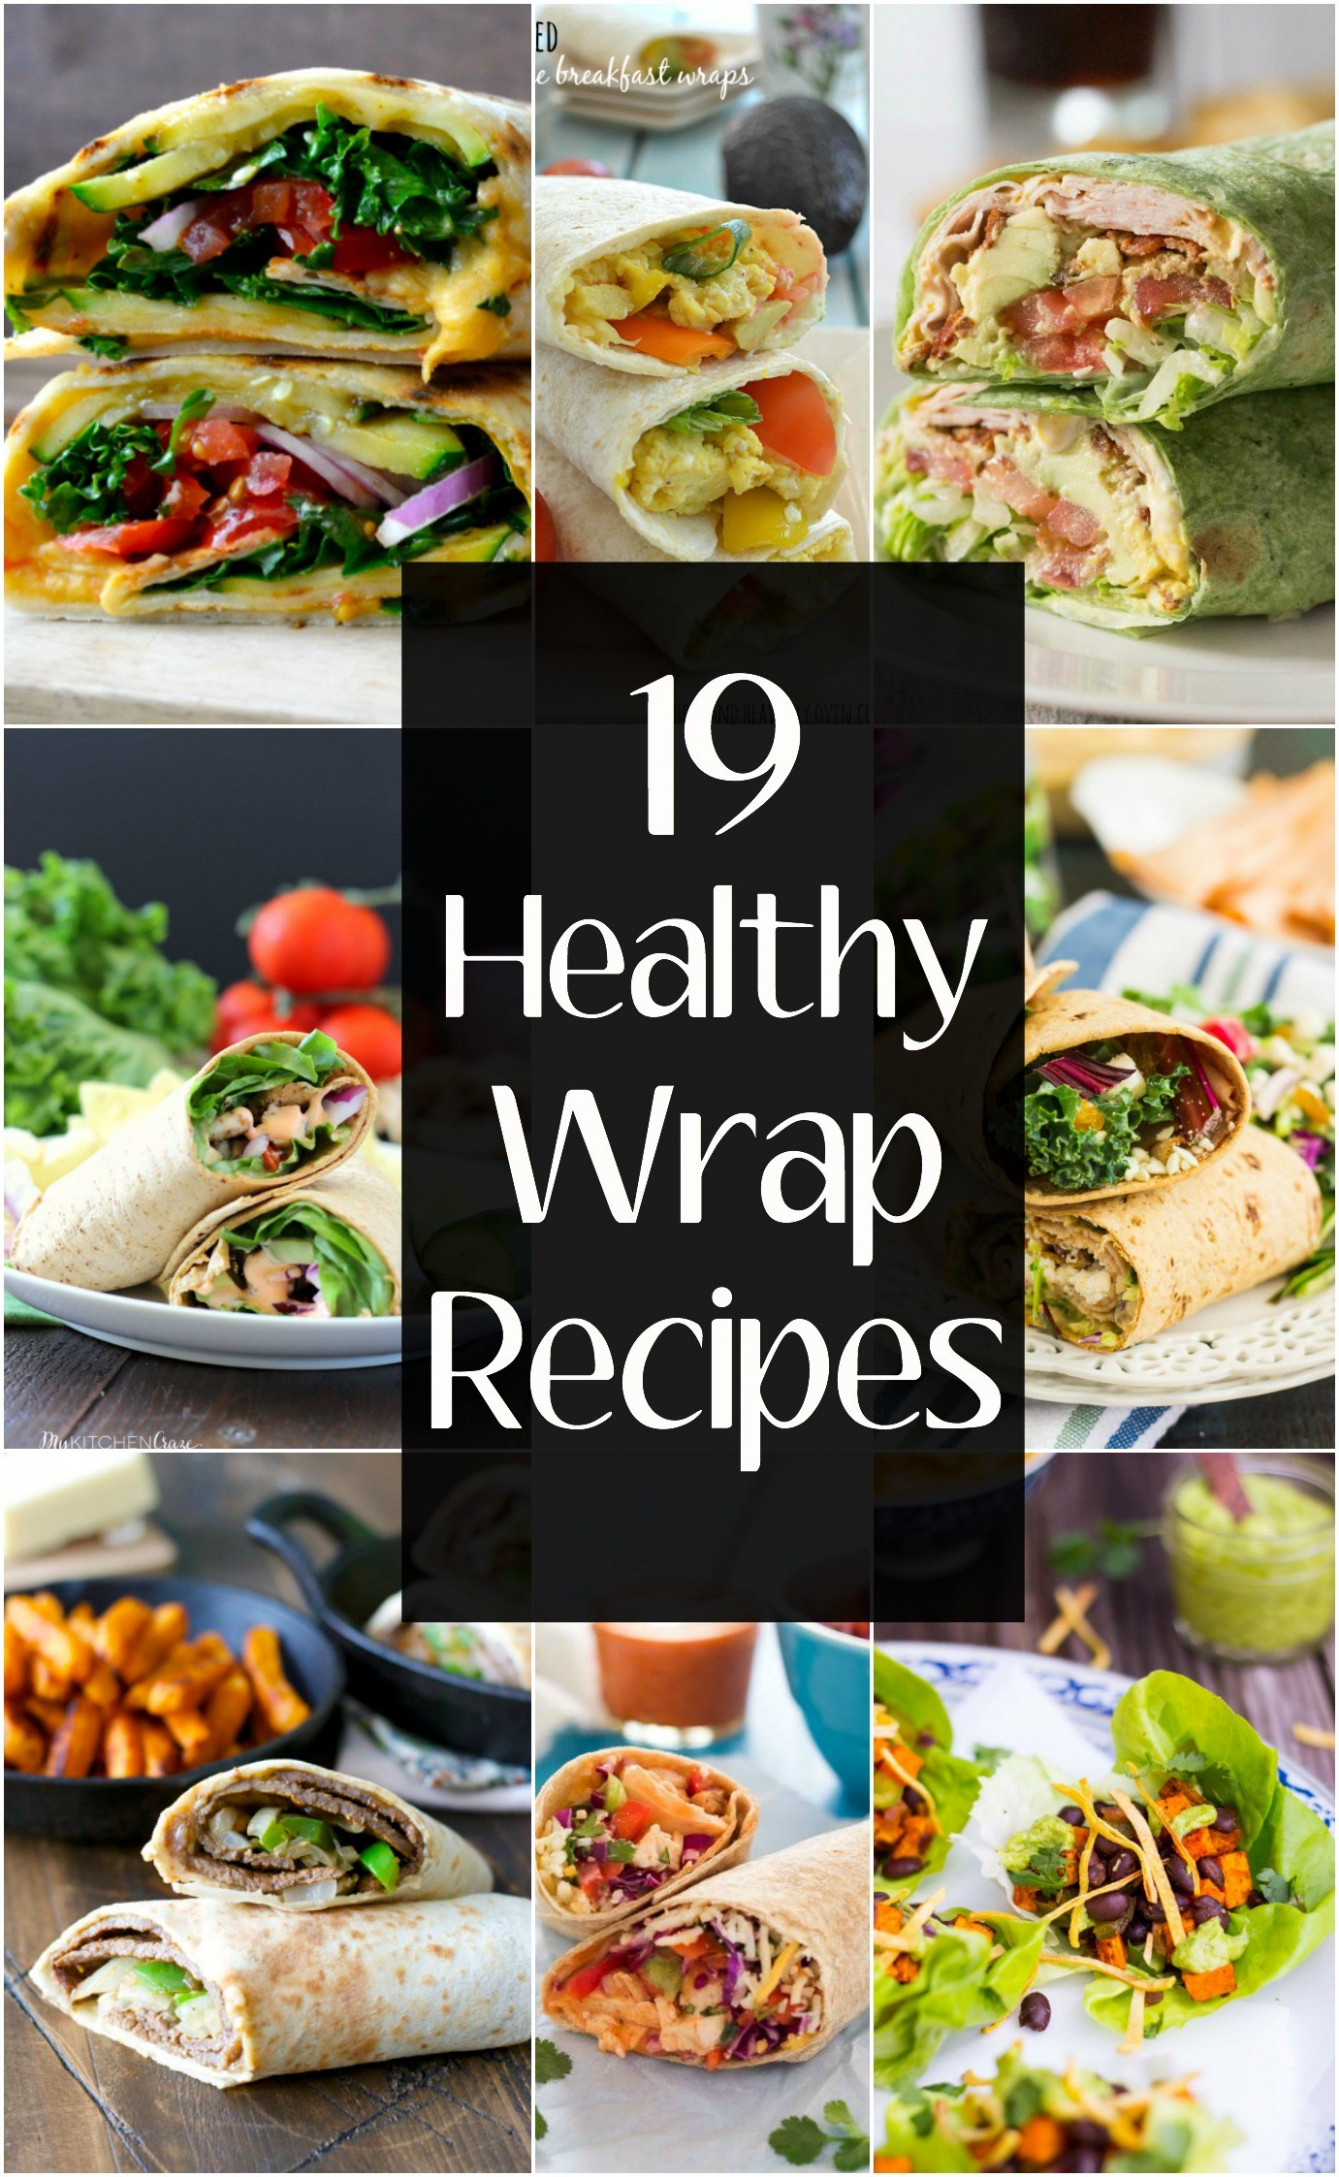 Easy Healthy Wrap Recipes - Maebells